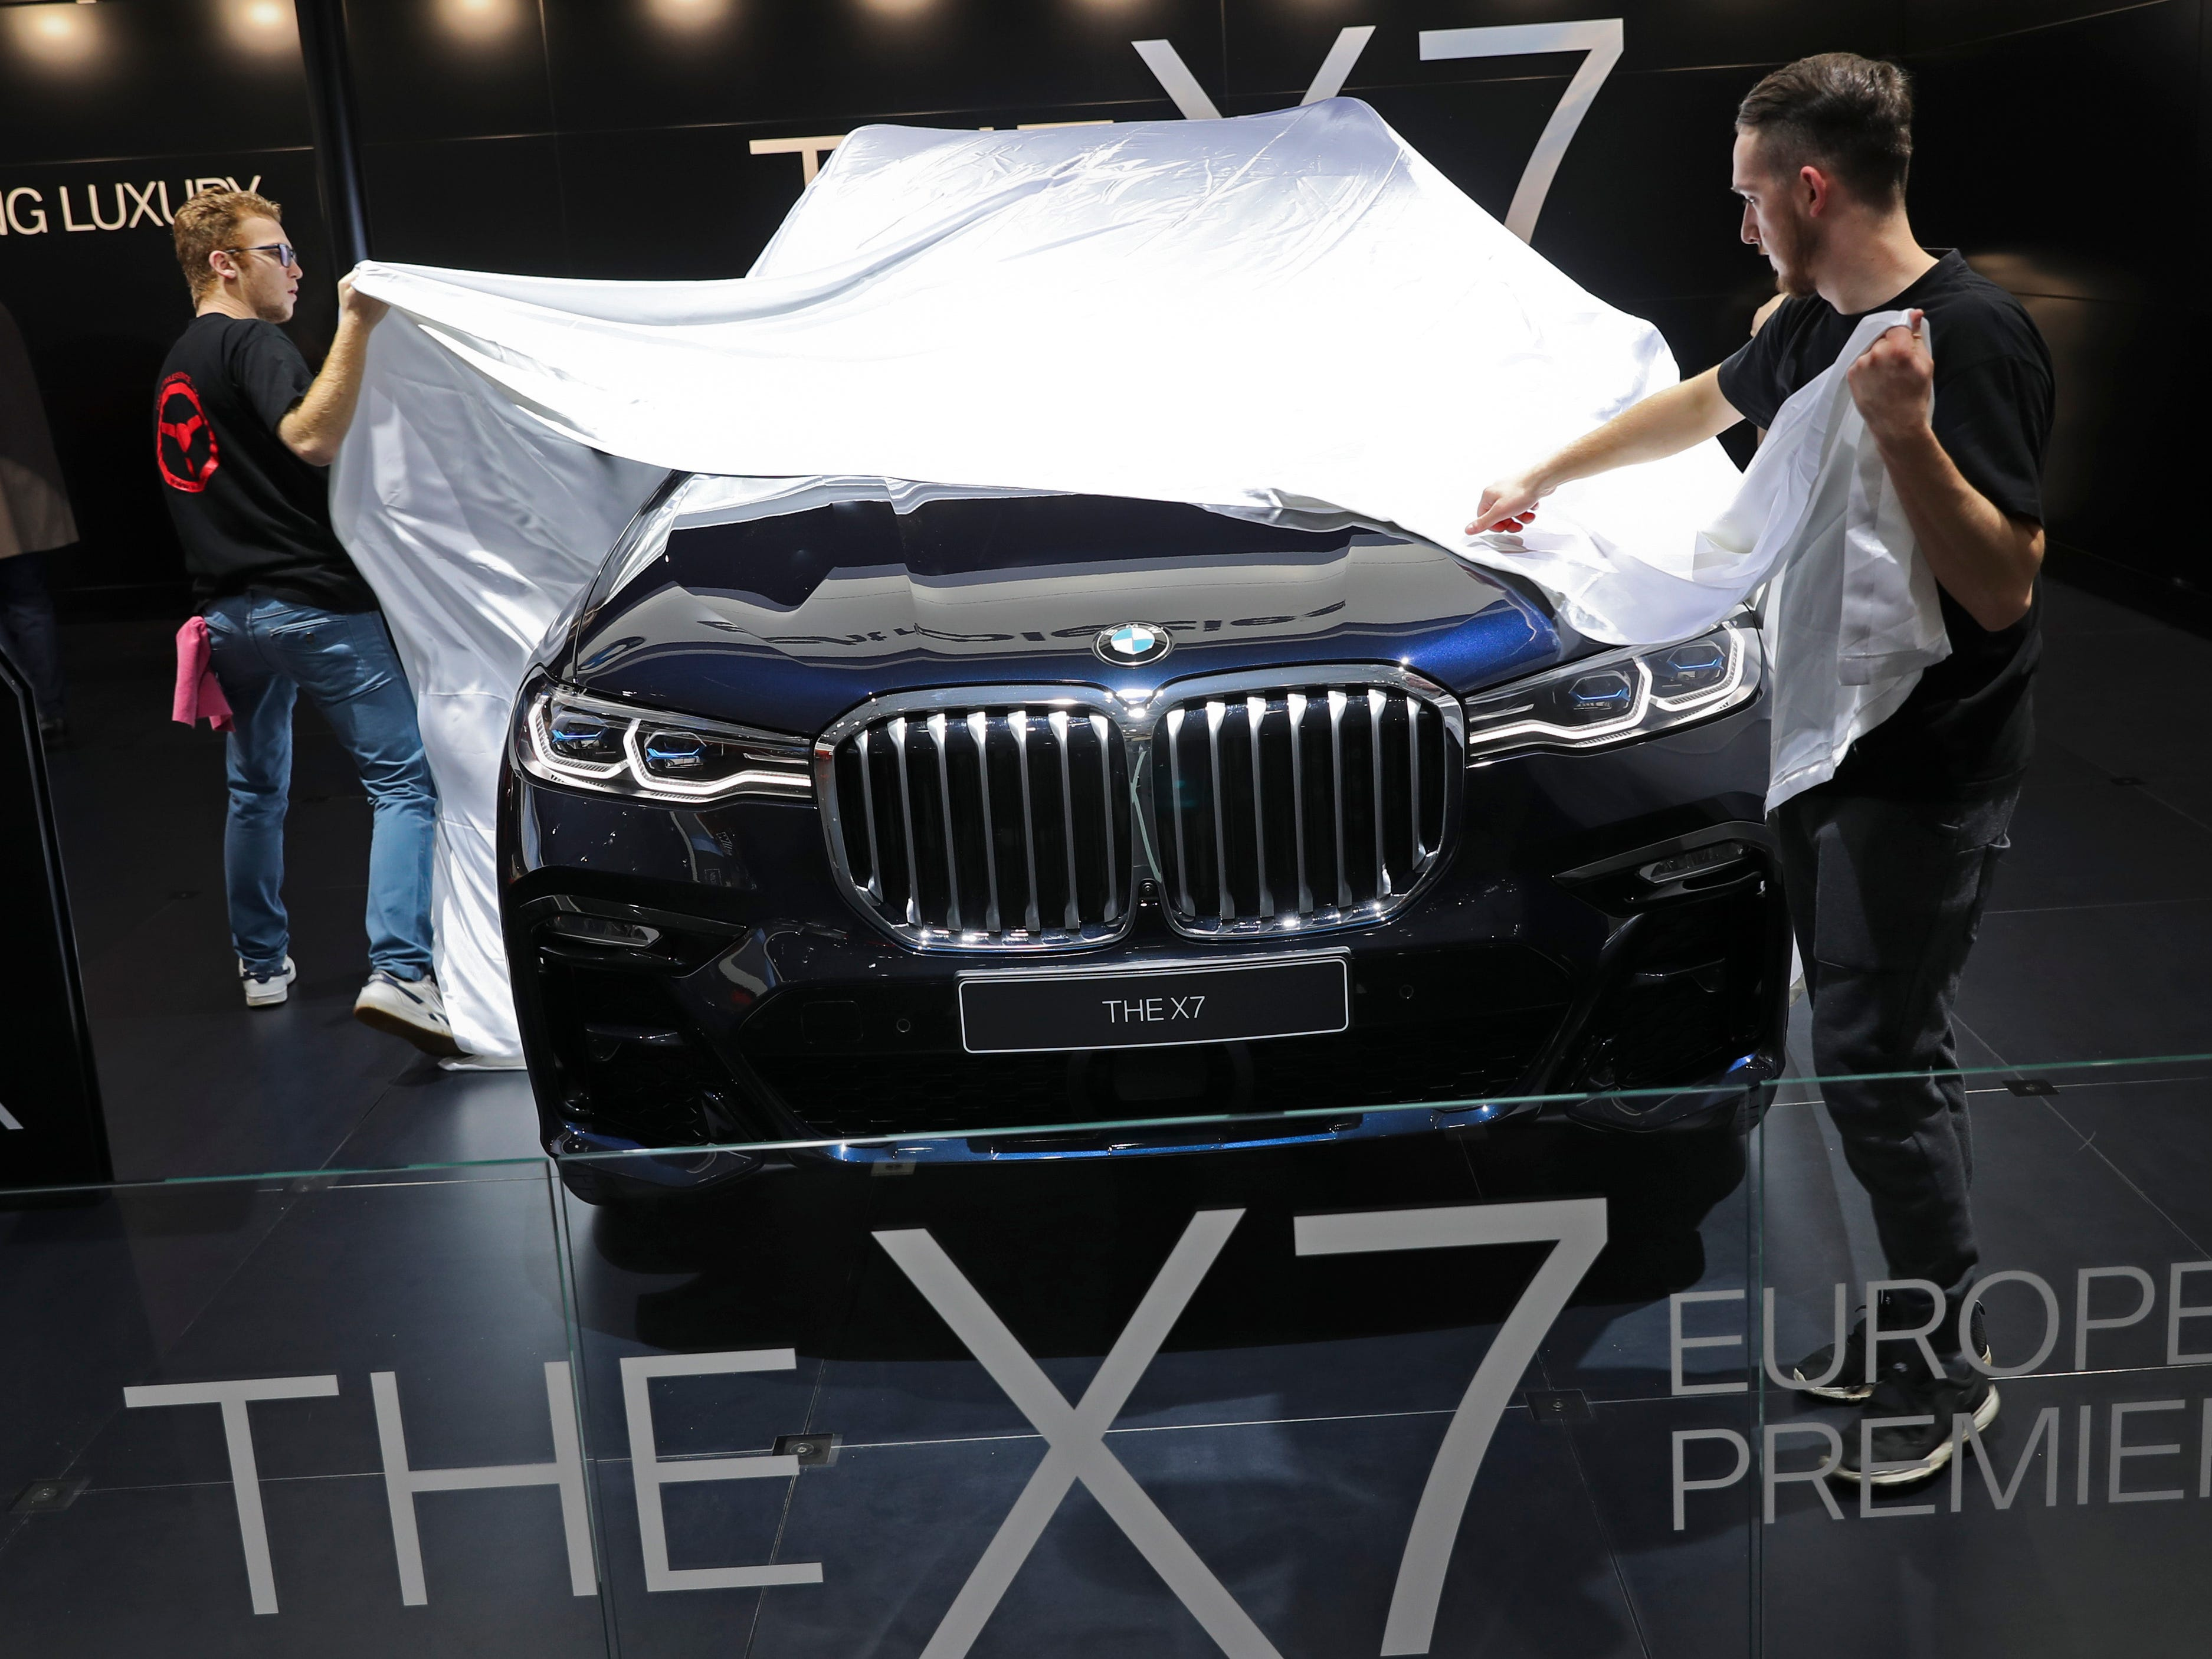 Employees cover the new BMW X7 before its unveiling.